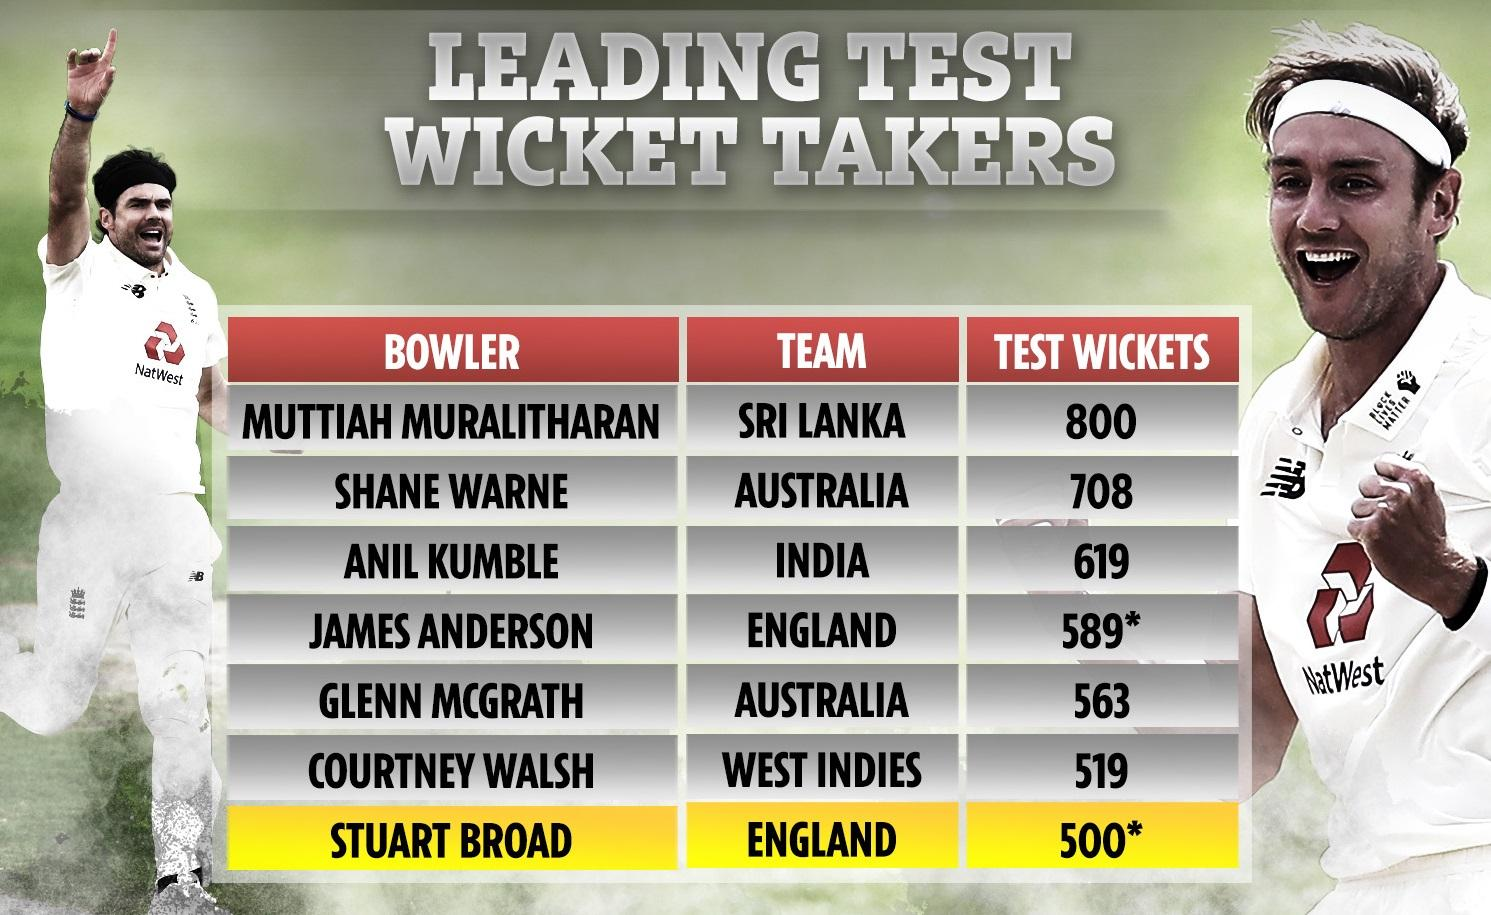 Stuart Broad becomes 7th bowler to take 500 Test wickets_40.1